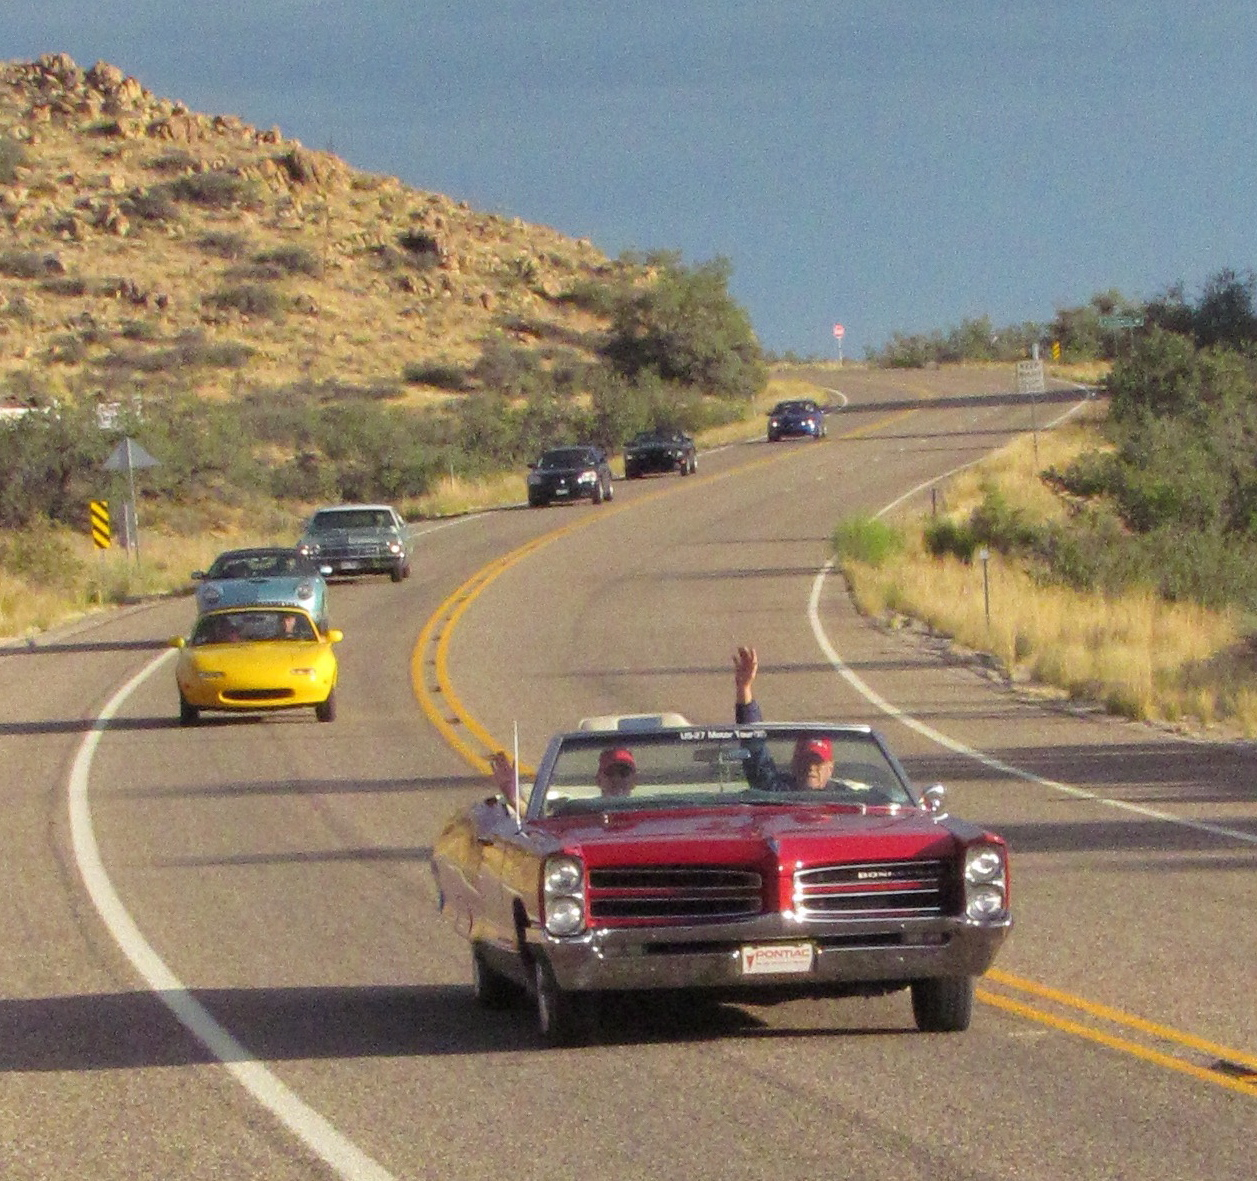 Road rallies introduce us to new places, and to new faces